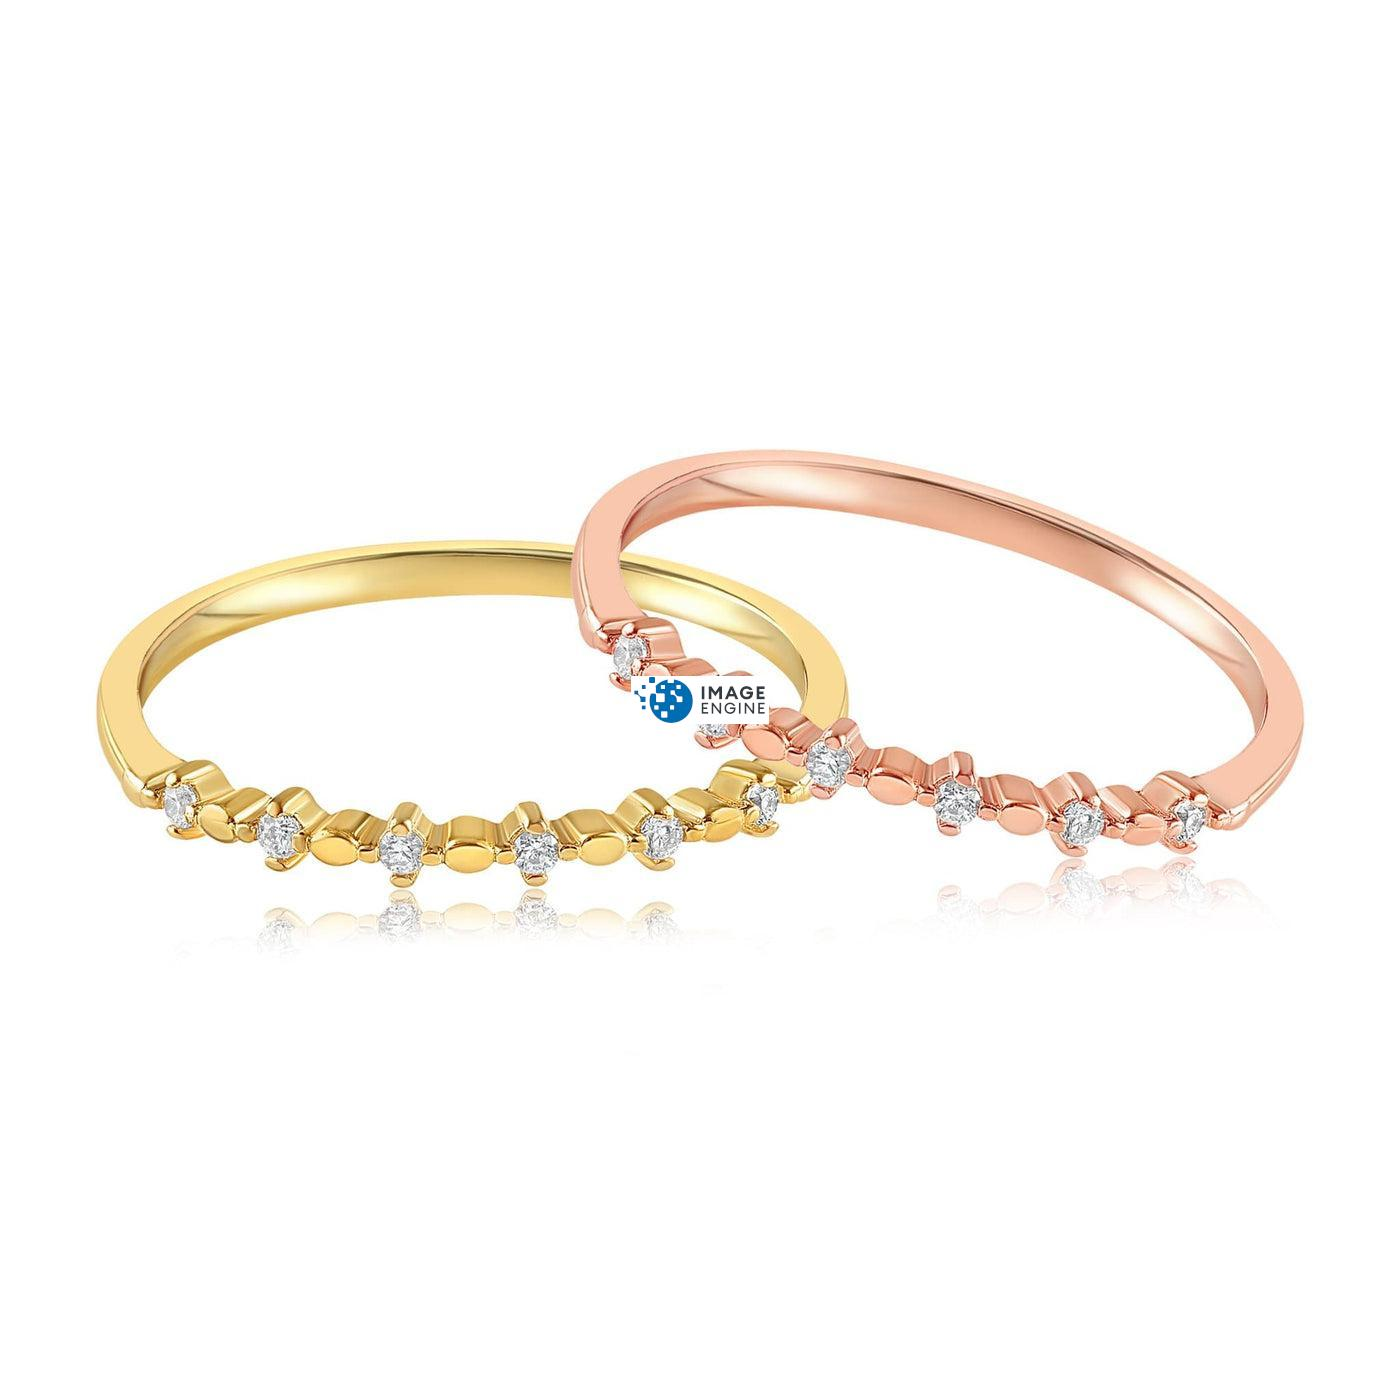 Nicolette Stackable Ring - Front View Side by Side - 18K Rose Gold Vermeil and 18K Yellow Gold Vermeil